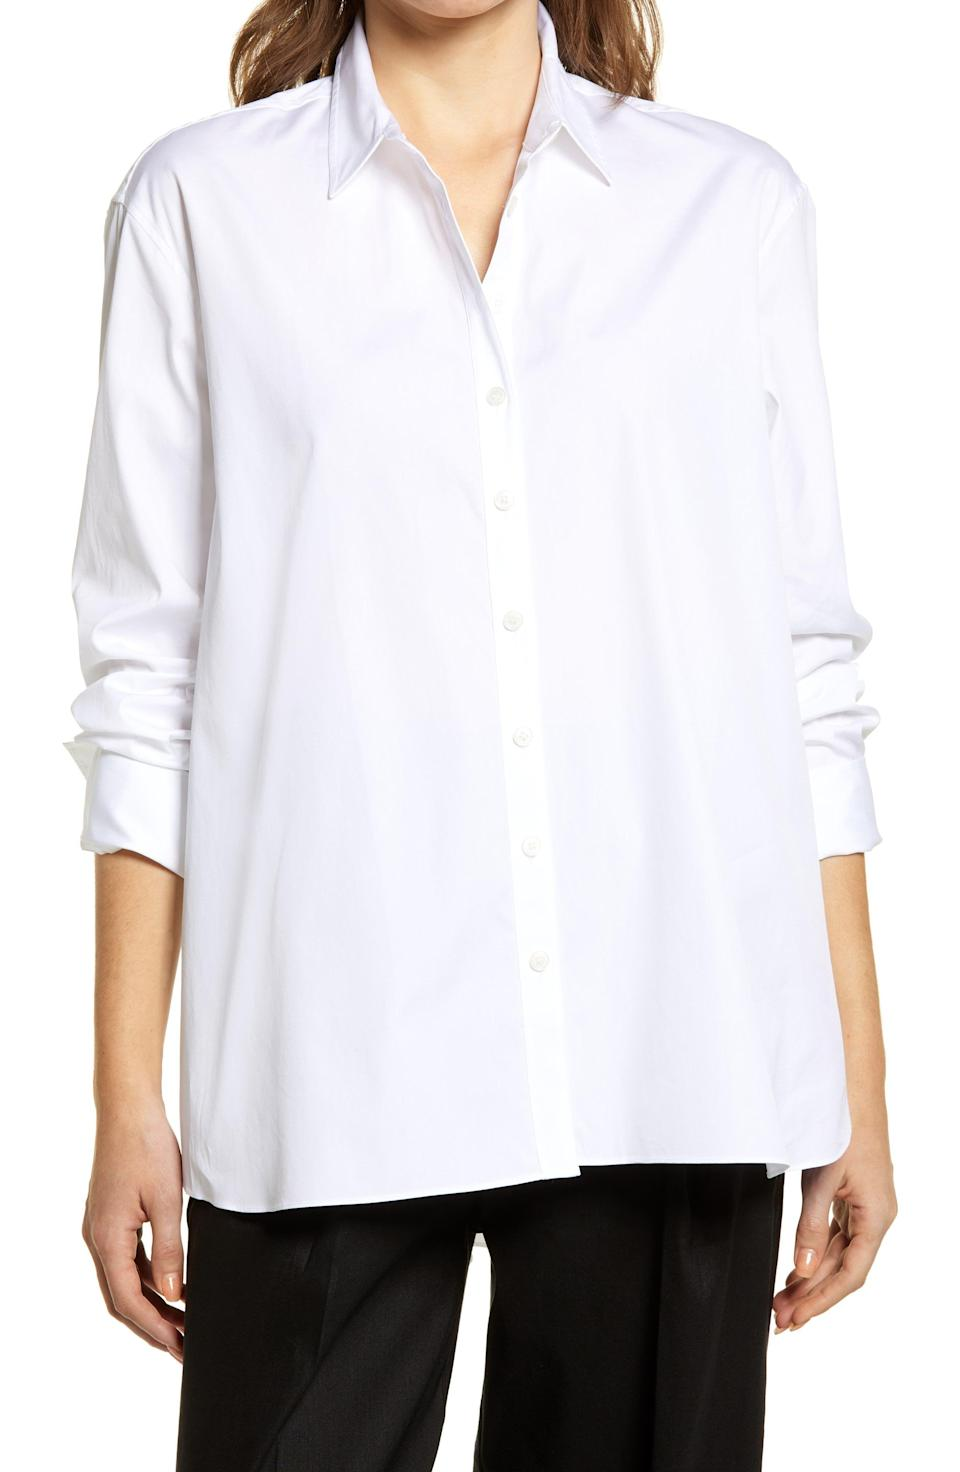 """<p><strong>NORDSTROM</strong></p><p>nordstrom.com</p><p><a href=""""https://go.redirectingat.com?id=74968X1596630&url=https%3A%2F%2Fwww.nordstrom.com%2Fs%2Fnordstrom-everyday-poplin-shirt%2F5727234&sref=https%3A%2F%2Fwww.harpersbazaar.com%2Ffashion%2Ftrends%2Fg36946278%2Fnordstrom-anniversary-sale-fashion%2F"""" rel=""""nofollow noopener"""" target=""""_blank"""" data-ylk=""""slk:Shop Now"""" class=""""link rapid-noclick-resp"""">Shop Now</a></p><p><strong>Sale: $46</strong></p><p><strong>After Sale: $69 </strong></p><p>In case you missed it, it's <a href=""""https://www.harpersbazaar.com/fashion/fashion-week/g34074135/spring-2021-fashion-trends/"""" rel=""""nofollow noopener"""" target=""""_blank"""" data-ylk=""""slk:passé"""" class=""""link rapid-noclick-resp"""">passé</a> to refer to oversized poplin shirts as being borrowed from your 'boyfriend.' (At long last.) Here, an elevated basic that can be paired with everything from leather pants to loose trousers. </p>"""